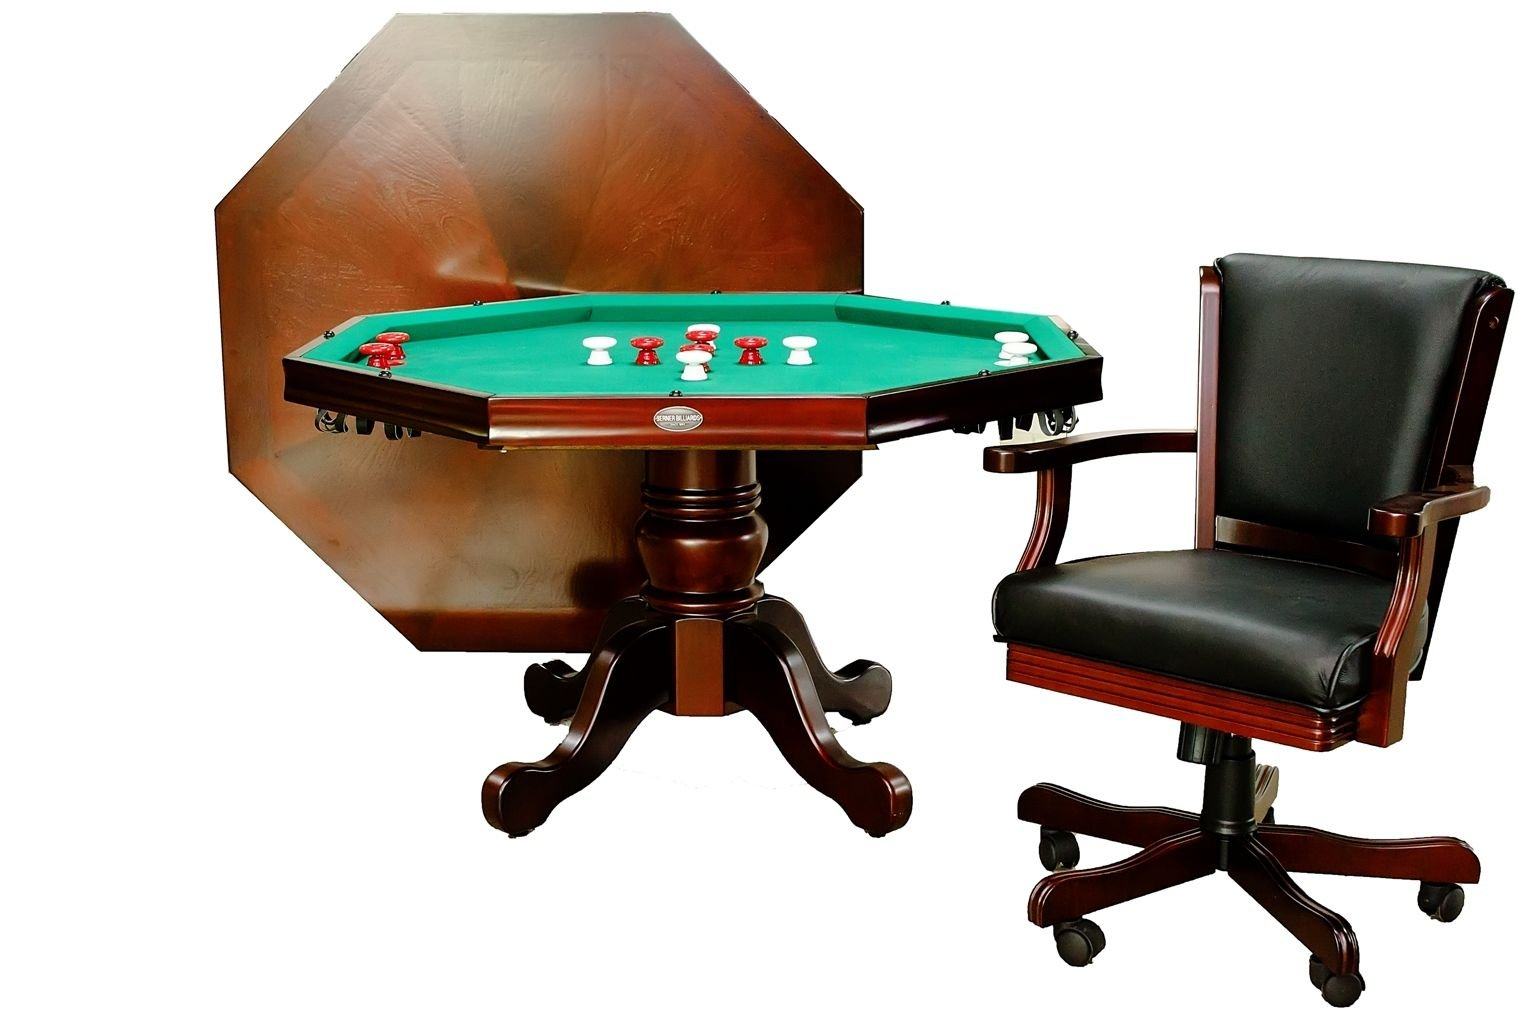 3 in 1 Game Table - Octagon 54'' Bumper Pool, Poker & Dining with 4 Chairs in Mahogany By Berner Billiards